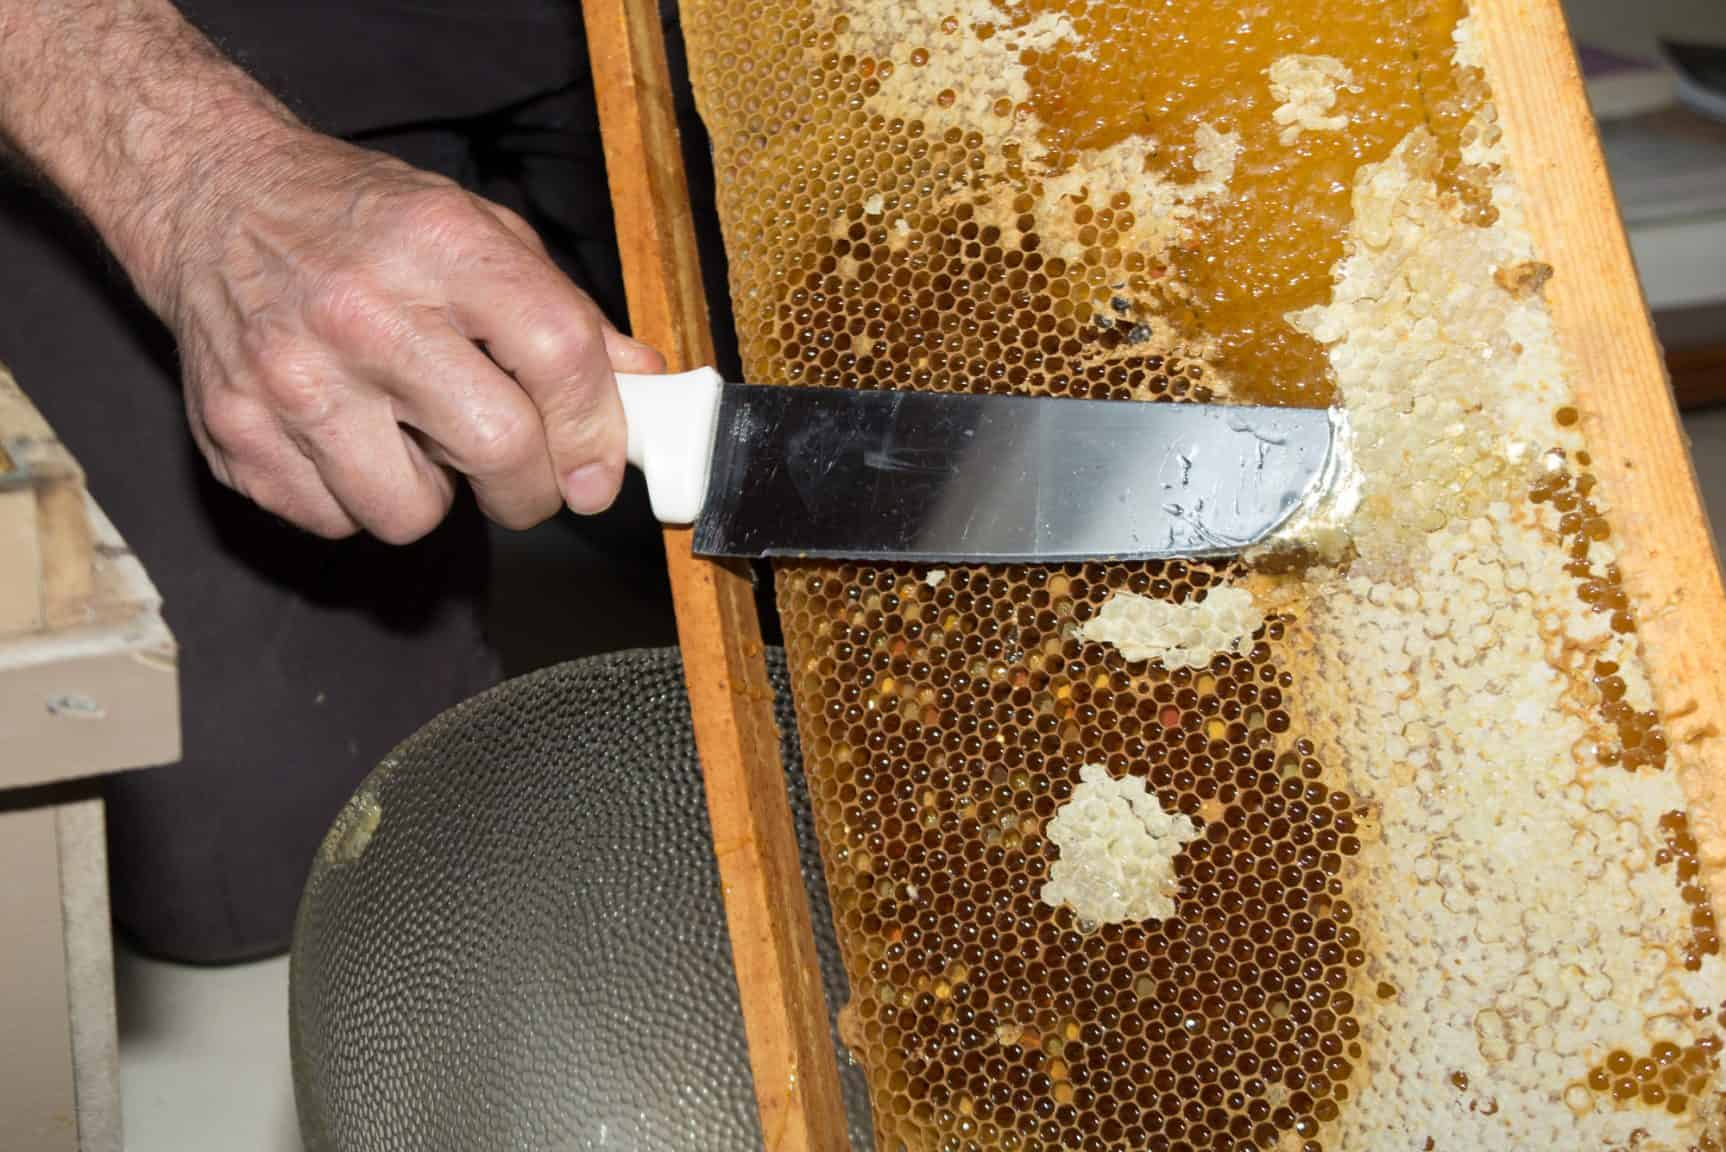 Honey harvesting